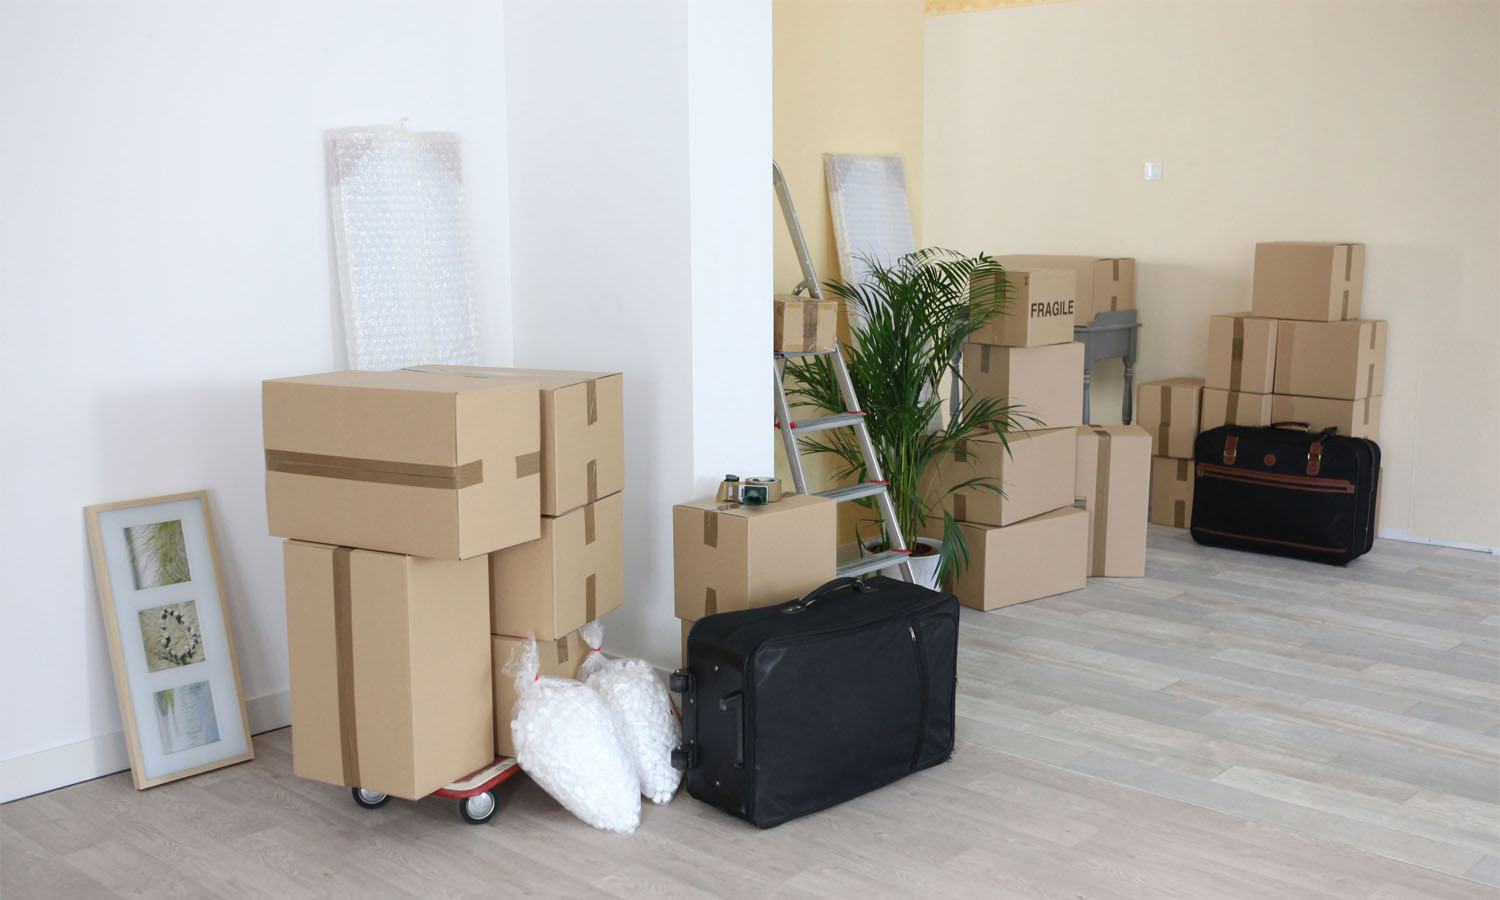 3 Reasons why we need a Moving Company